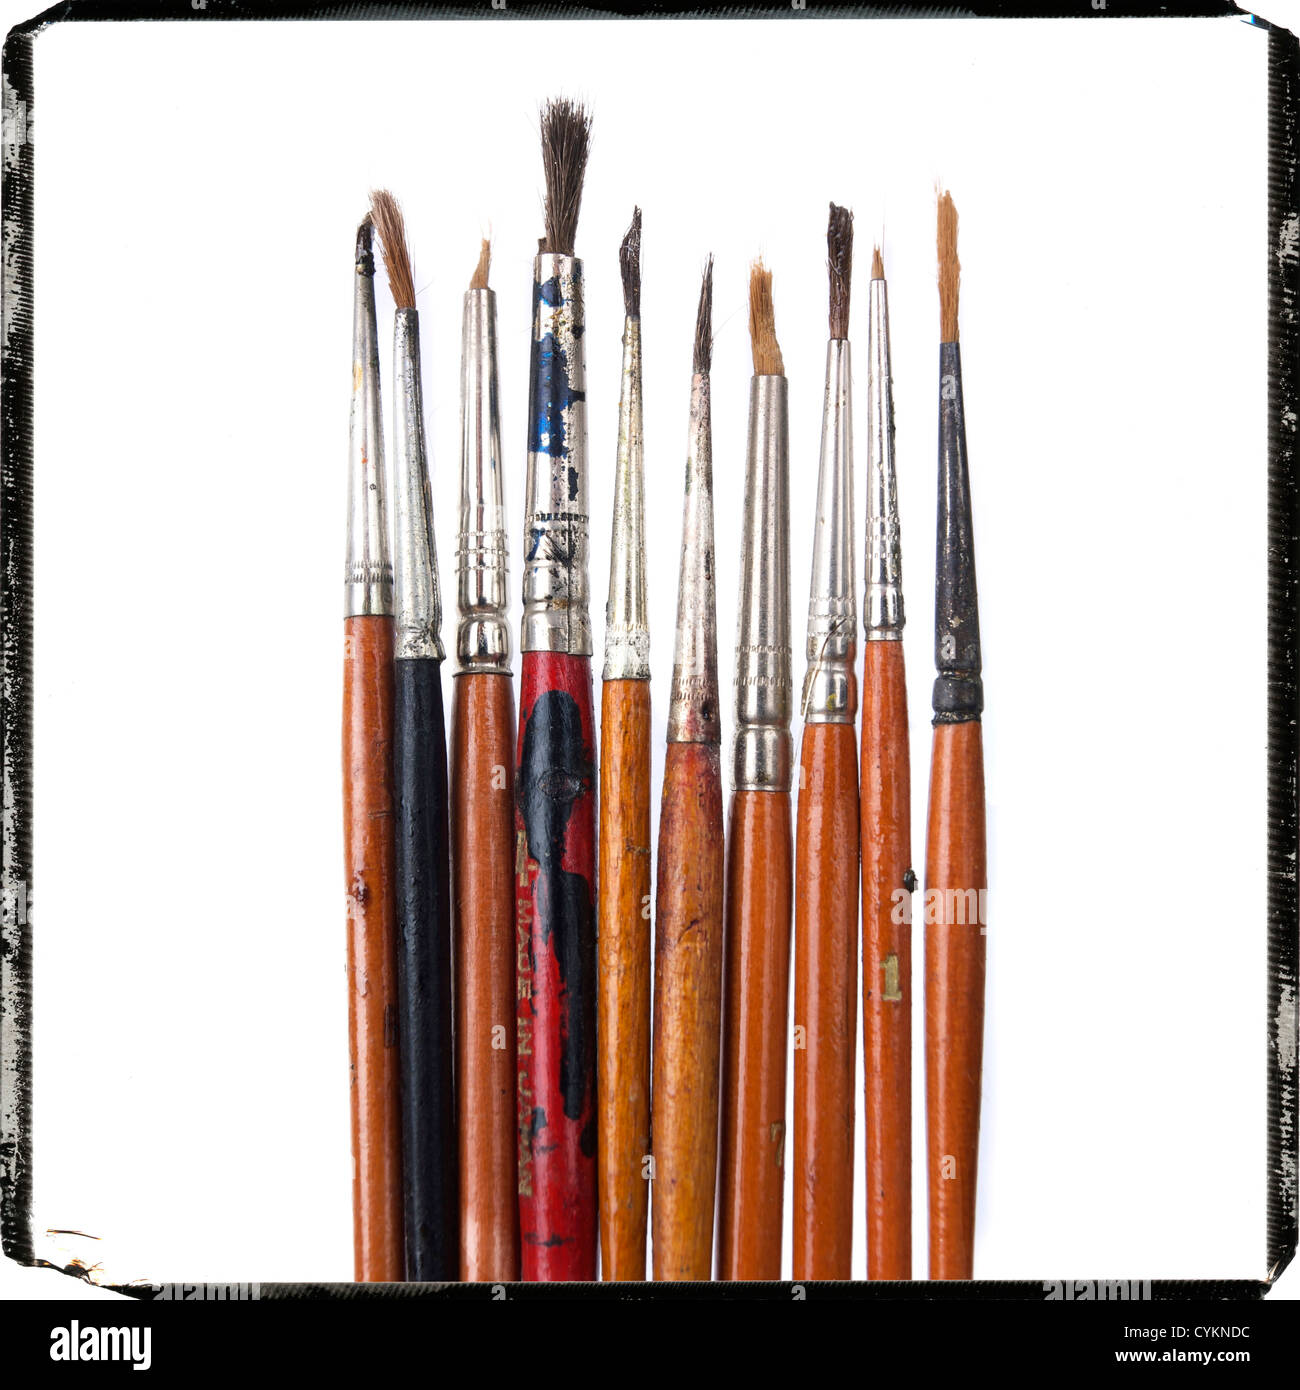 Brushes - Stock Image